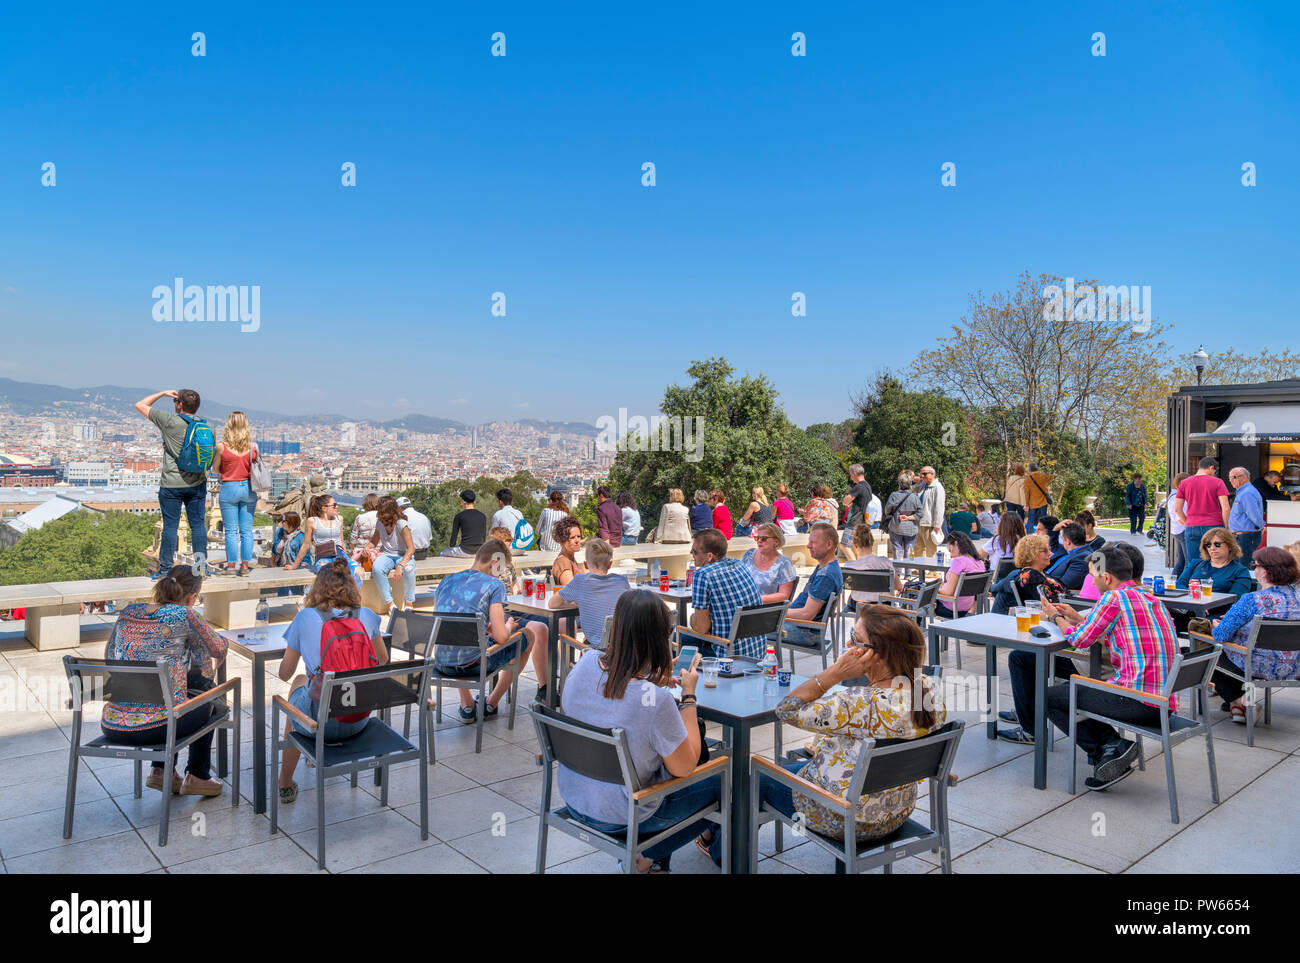 People sitting outside on the terrace of the cafe at the Museu Nacional d'Art de Catalunya (MNAC), Montjuïc, Barcelona, Spain. - Stock Image